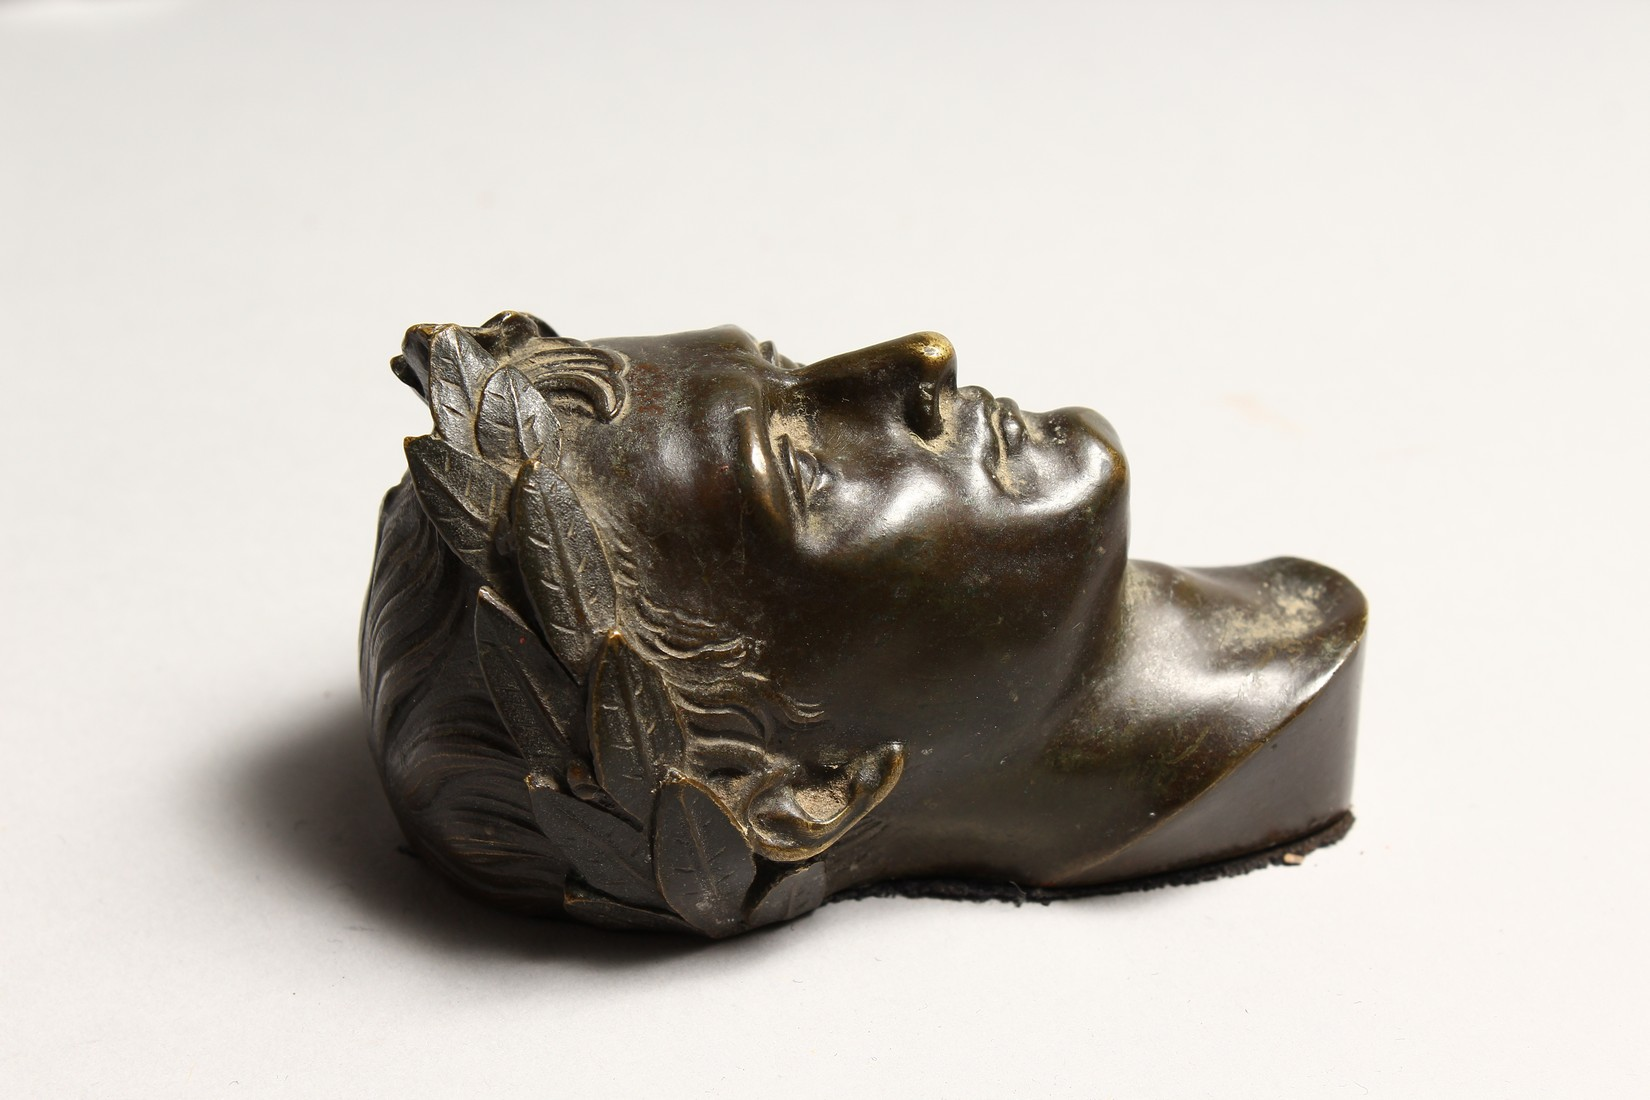 A SMALL GRAND TOUR BRONZE ROMAN HEAD 3.75ins high. - Image 3 of 5